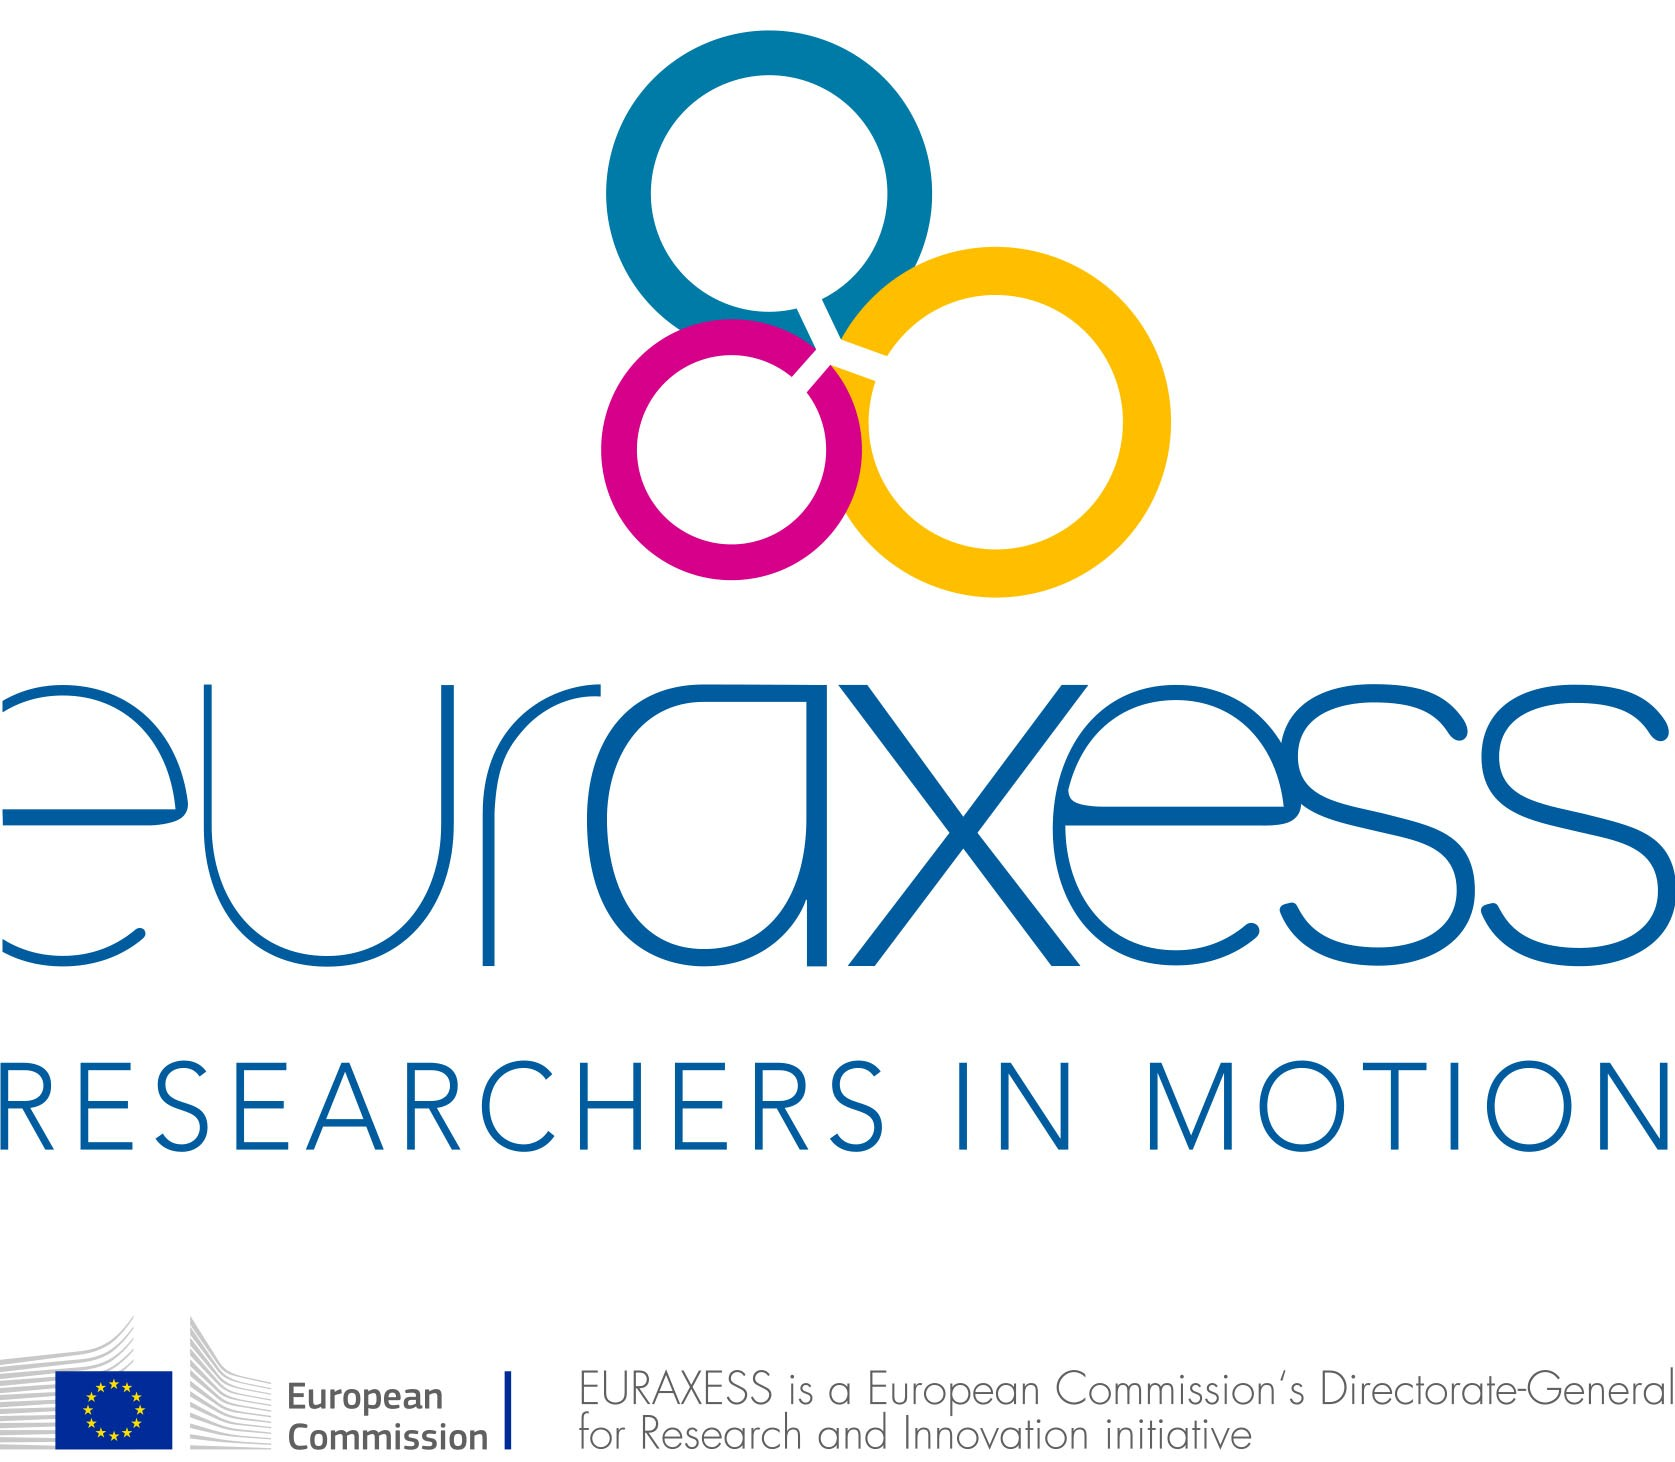 euraxess_with_eclogo.jpg